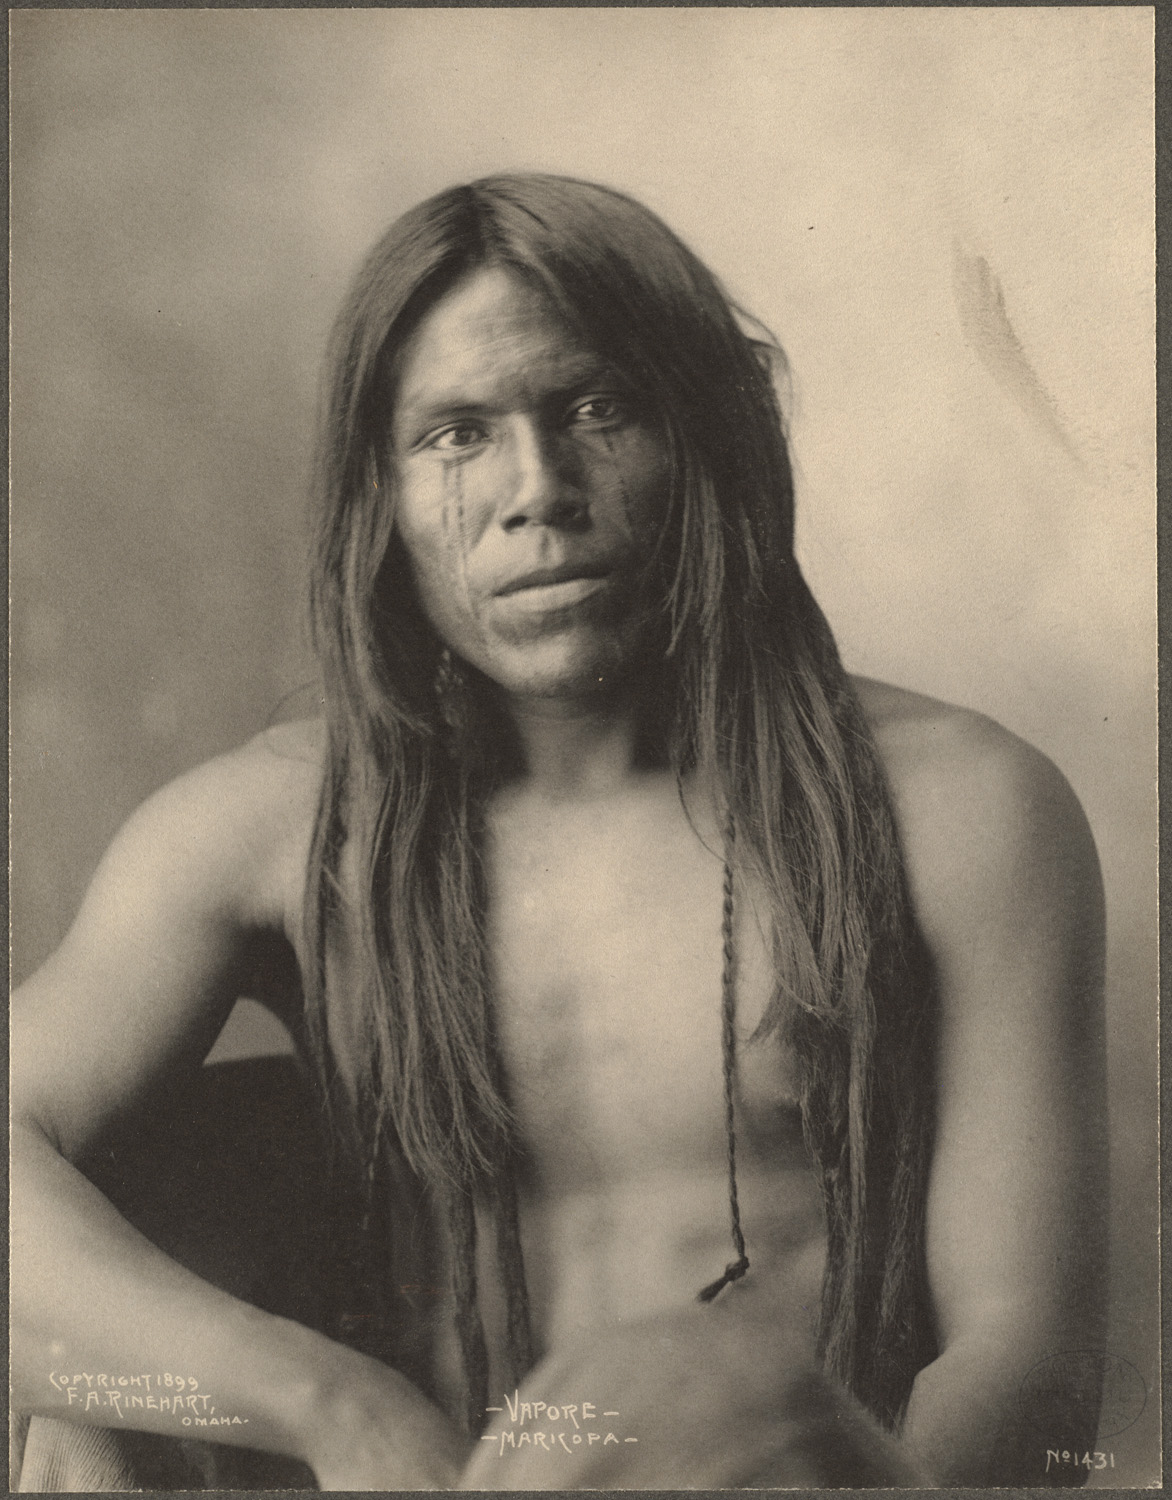 Frank Rinehart - Native American - Long Hair 2